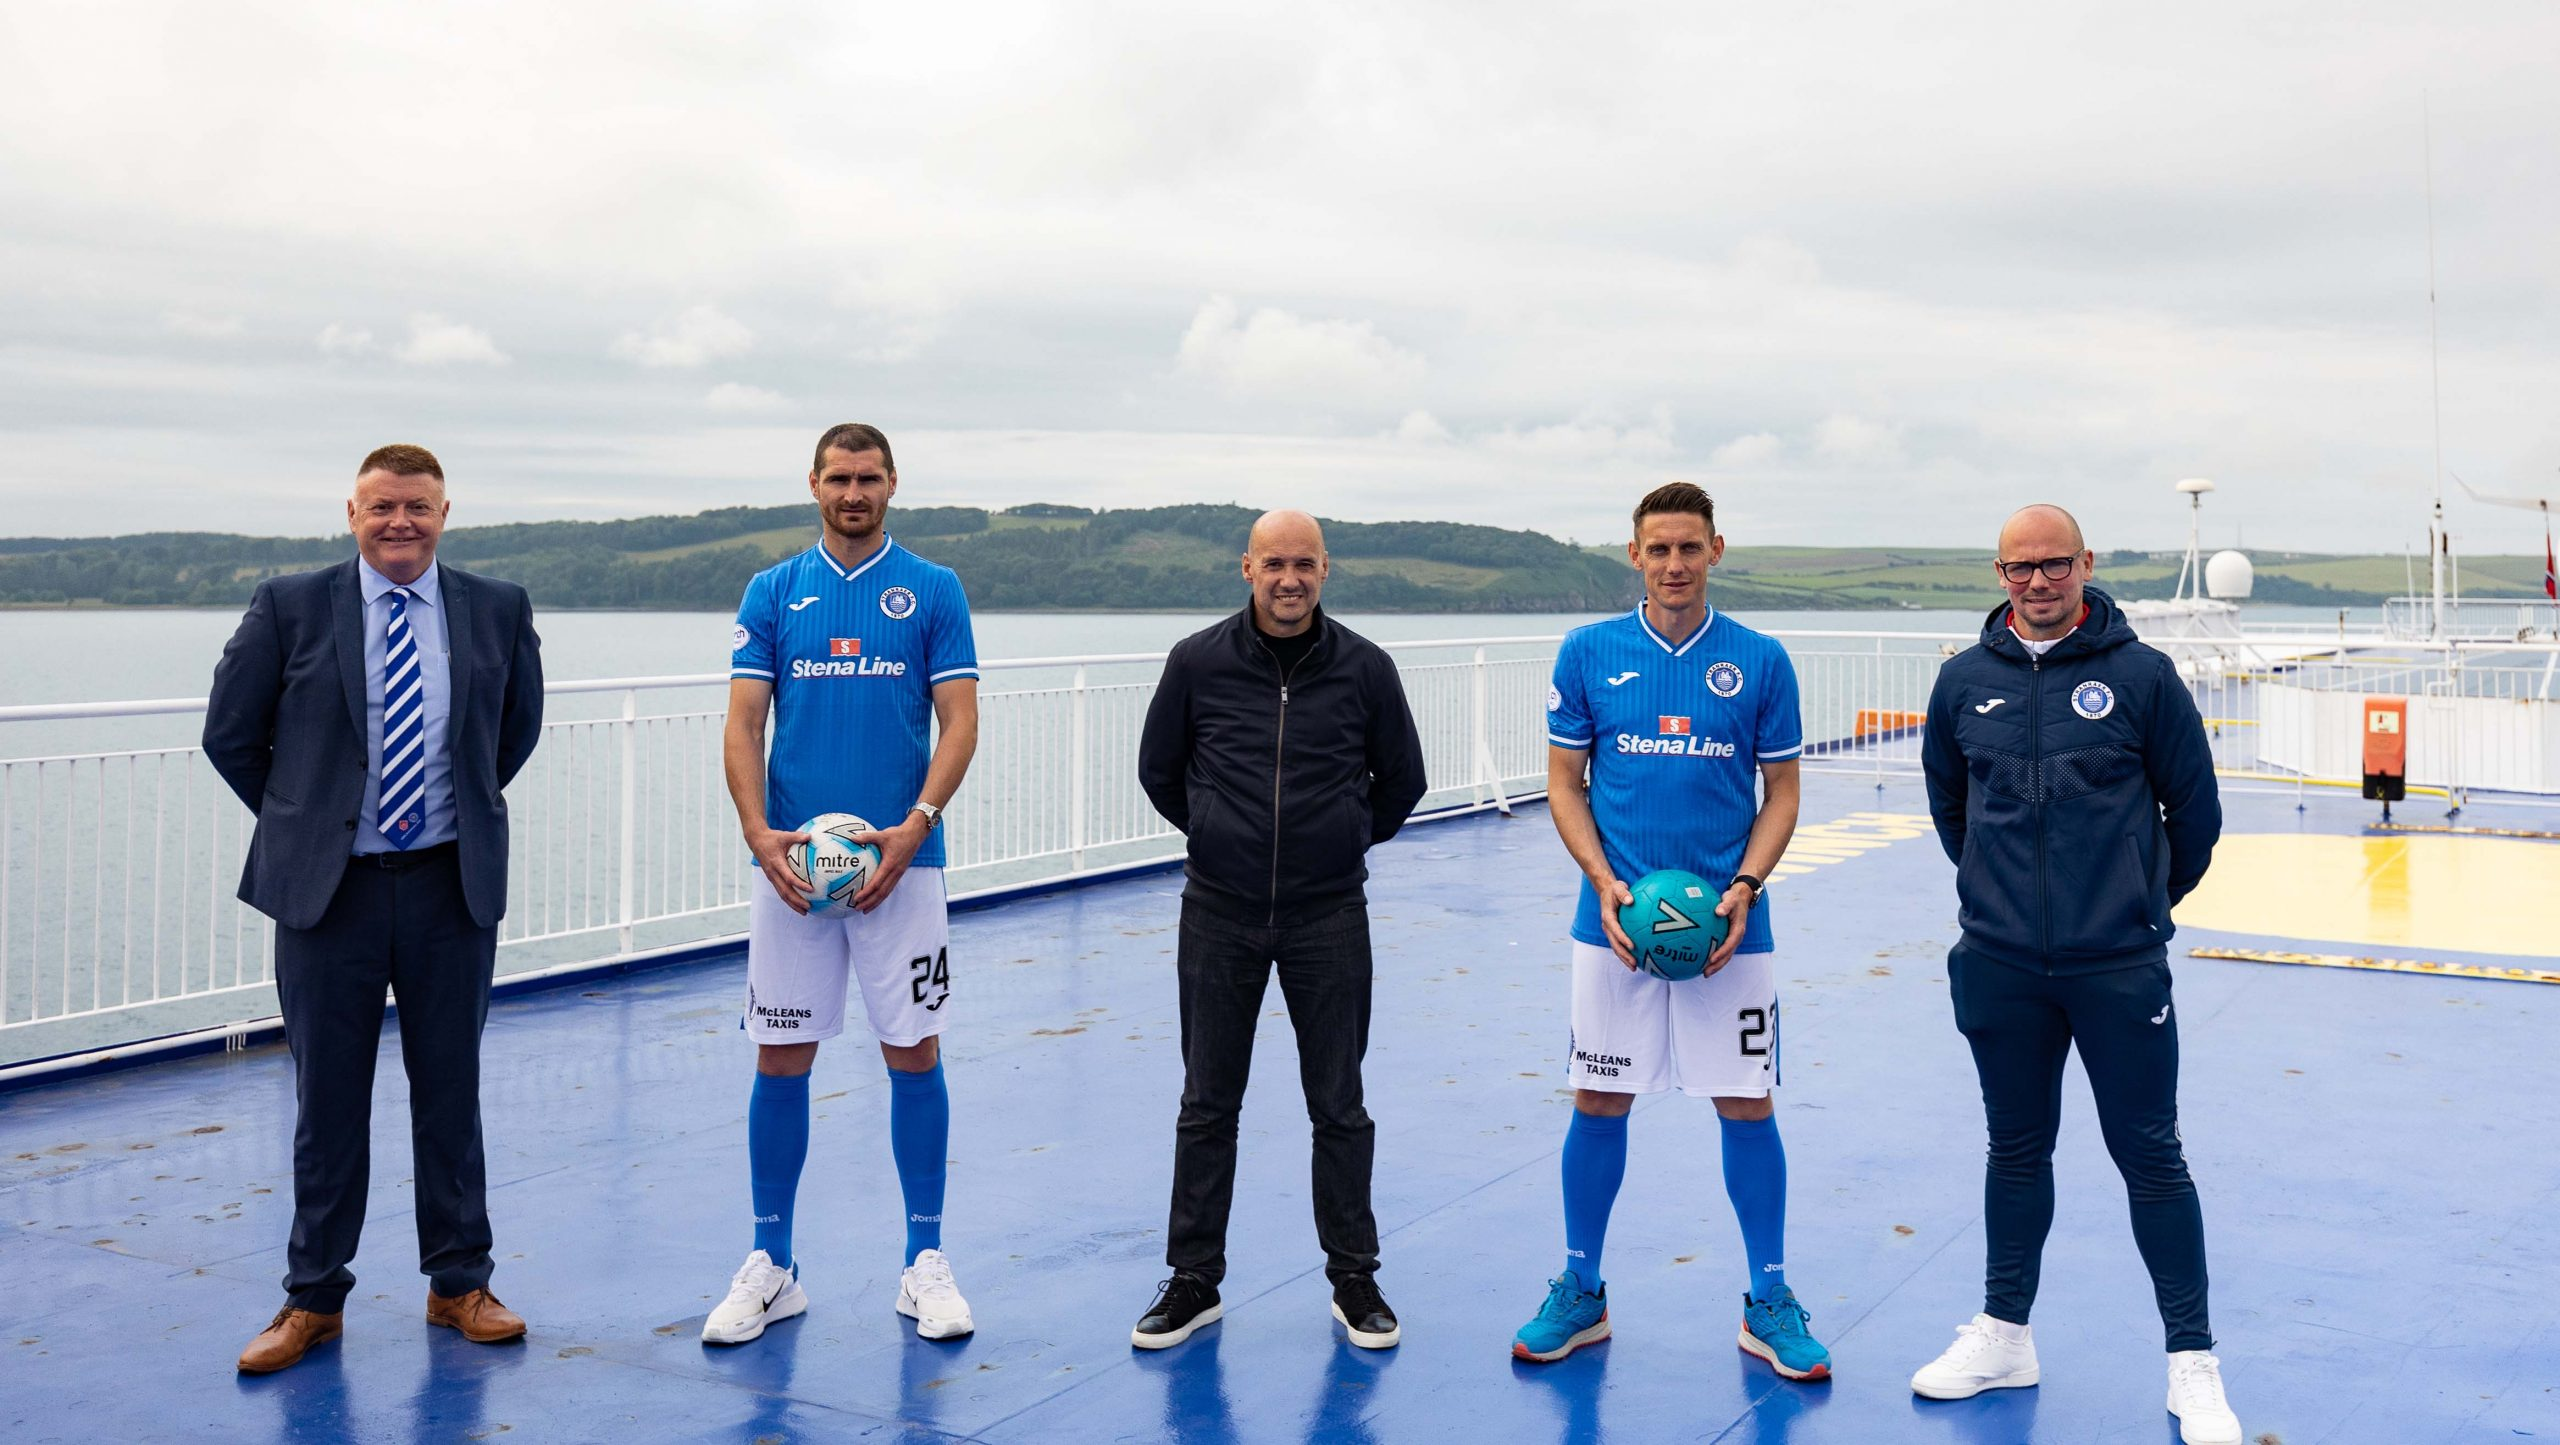 FERRY GOOD DEAL: The longest unbroken sponsorship deal in British professional football history is to continue for a staggering 34th consecutive season after ferry company Stena Line renewed its partnership with Scottish League Two side Stranraer Football Club. Stena Line's long-running association with Stranraer FC 'kicked off' in 1988 and has lasted longer than any other sponsorship out of all the English, Scottish and Welsh professional football leagues. Celebrating the renewal of the sponsorship on top of the Superfast VII ferry are Stena Line PR & Communications Manager Simon Palmer (centre) with Stranraer FC Vice Chairman Robert H Rice, first team players Darryl Duffy and Scott Robertson, and team manager Jamie Hamill.